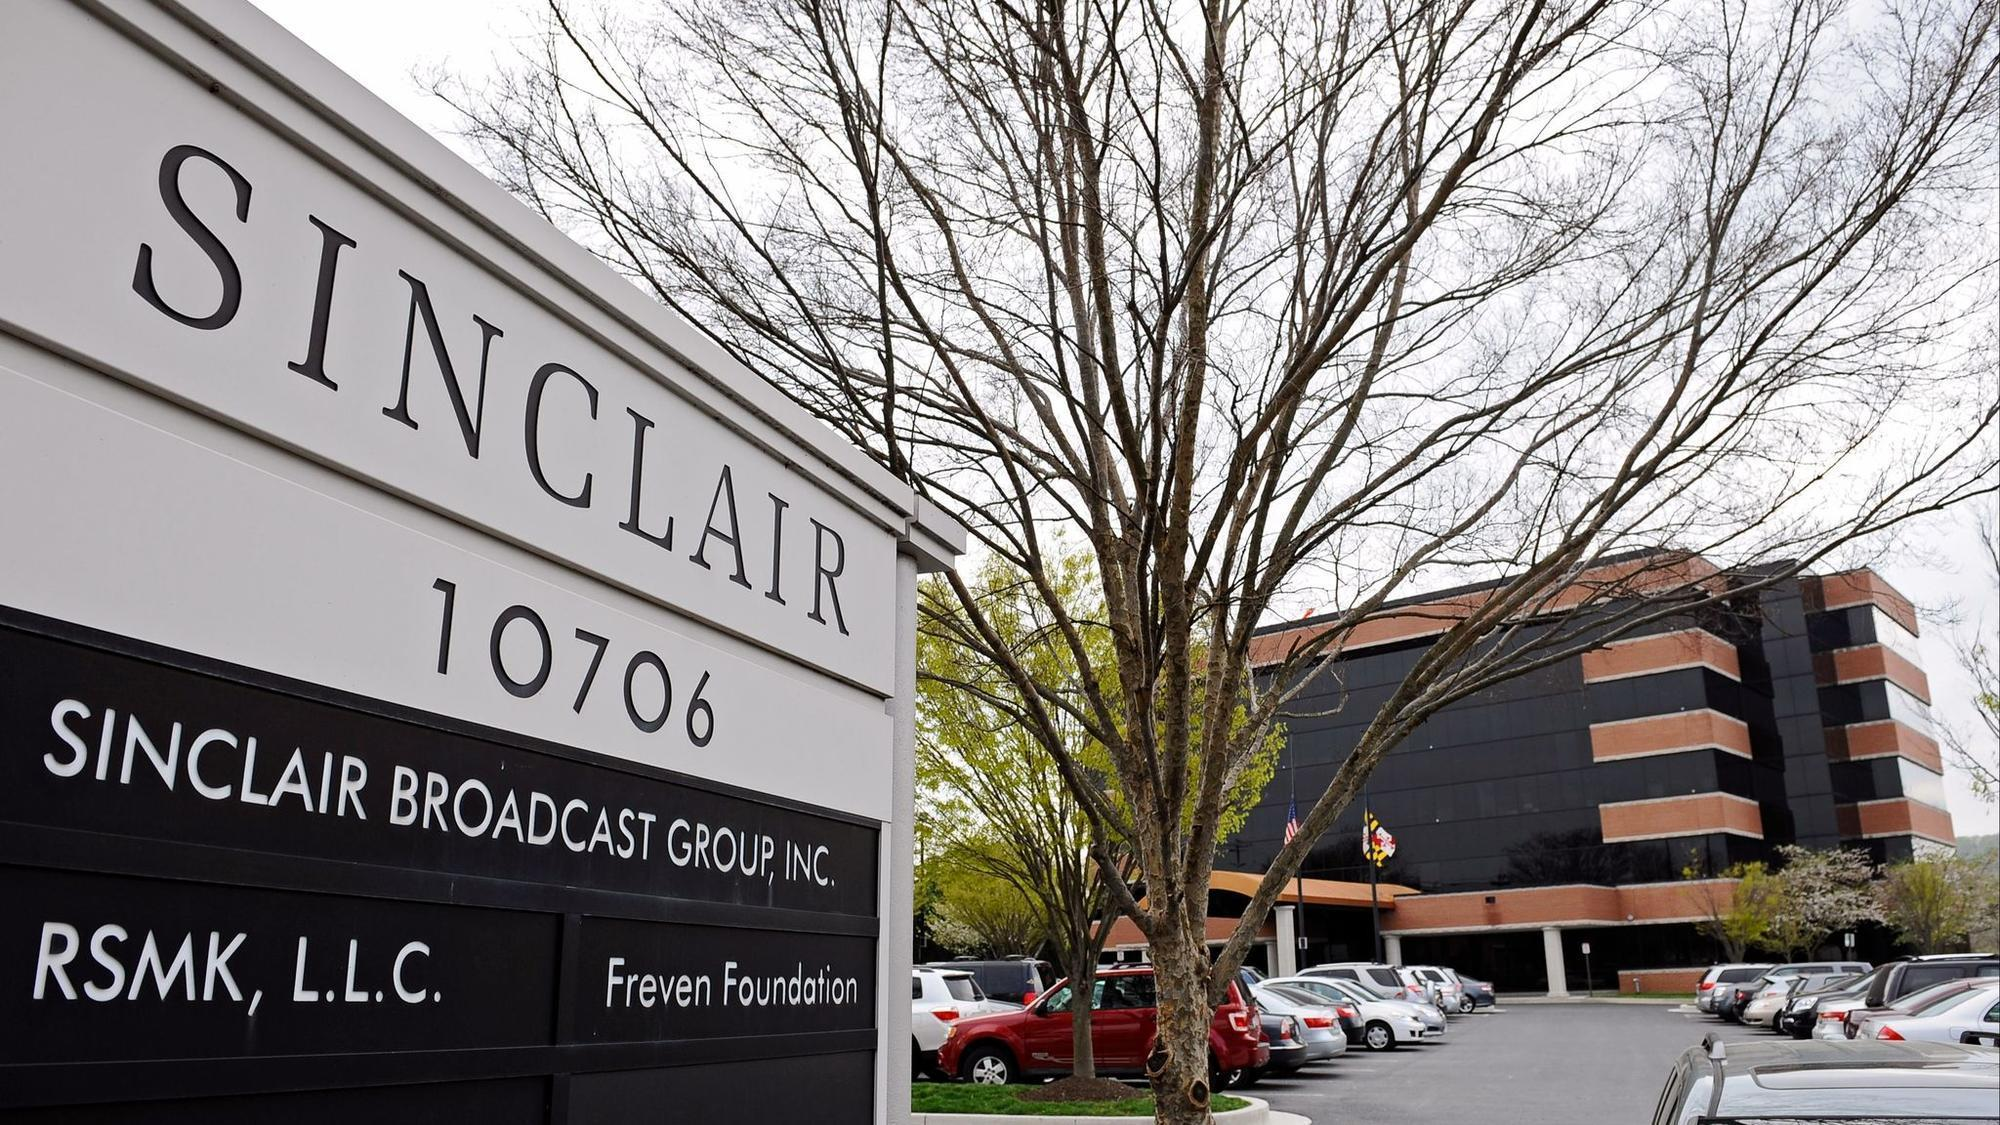 Trump Gives Thumbs-Up to Sinclair Broadcasting Propaganda